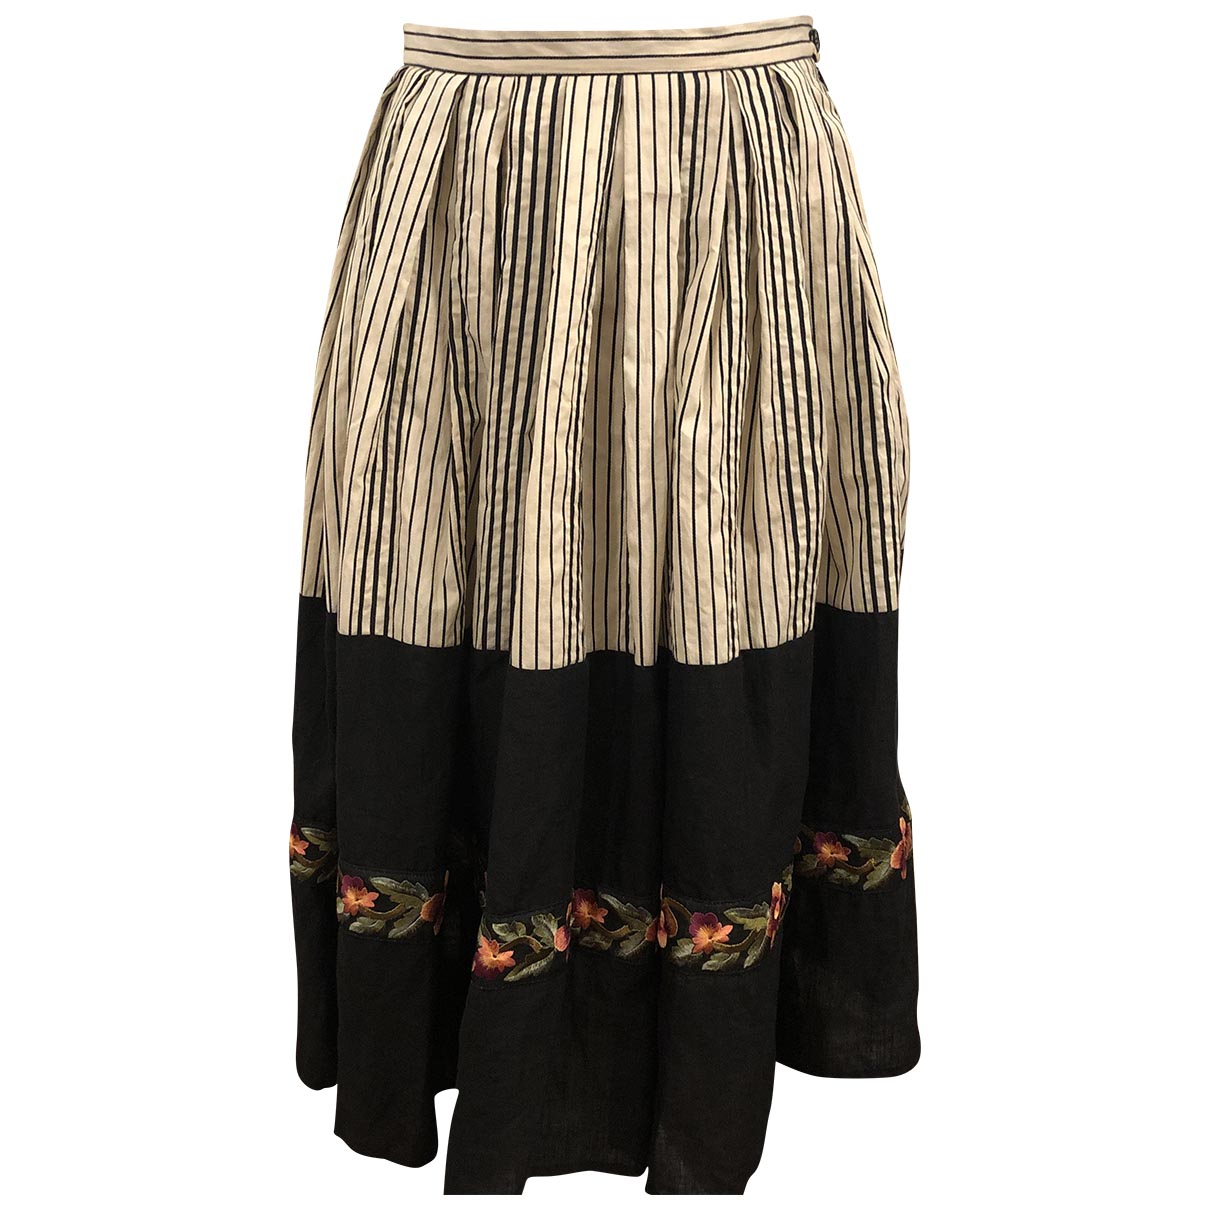 Attic And Barn \N Black Cotton skirt for Women 44 IT